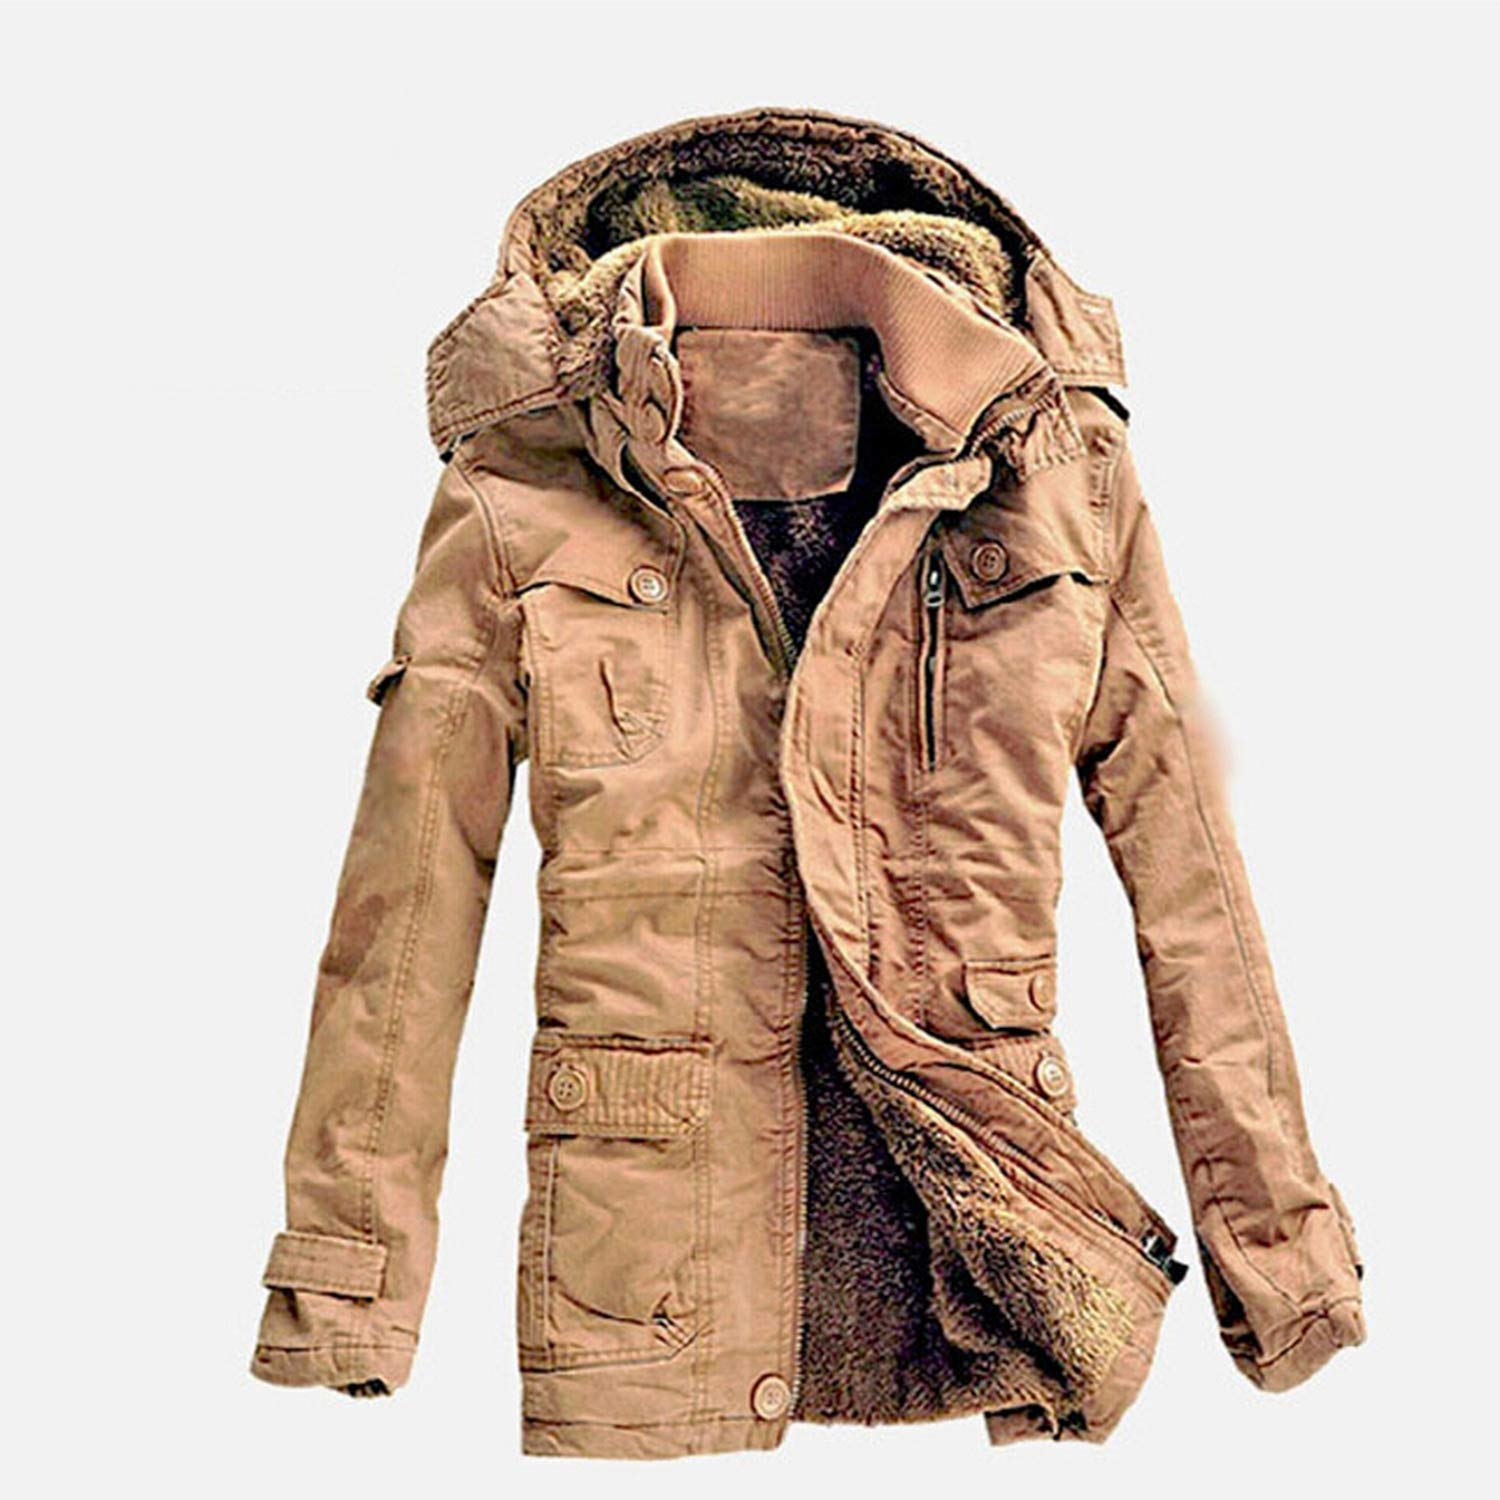 Men Outwear Breathable Warm Coat Parkas Thickening Casual Cotton-Padded Jacket Fleece Parkas